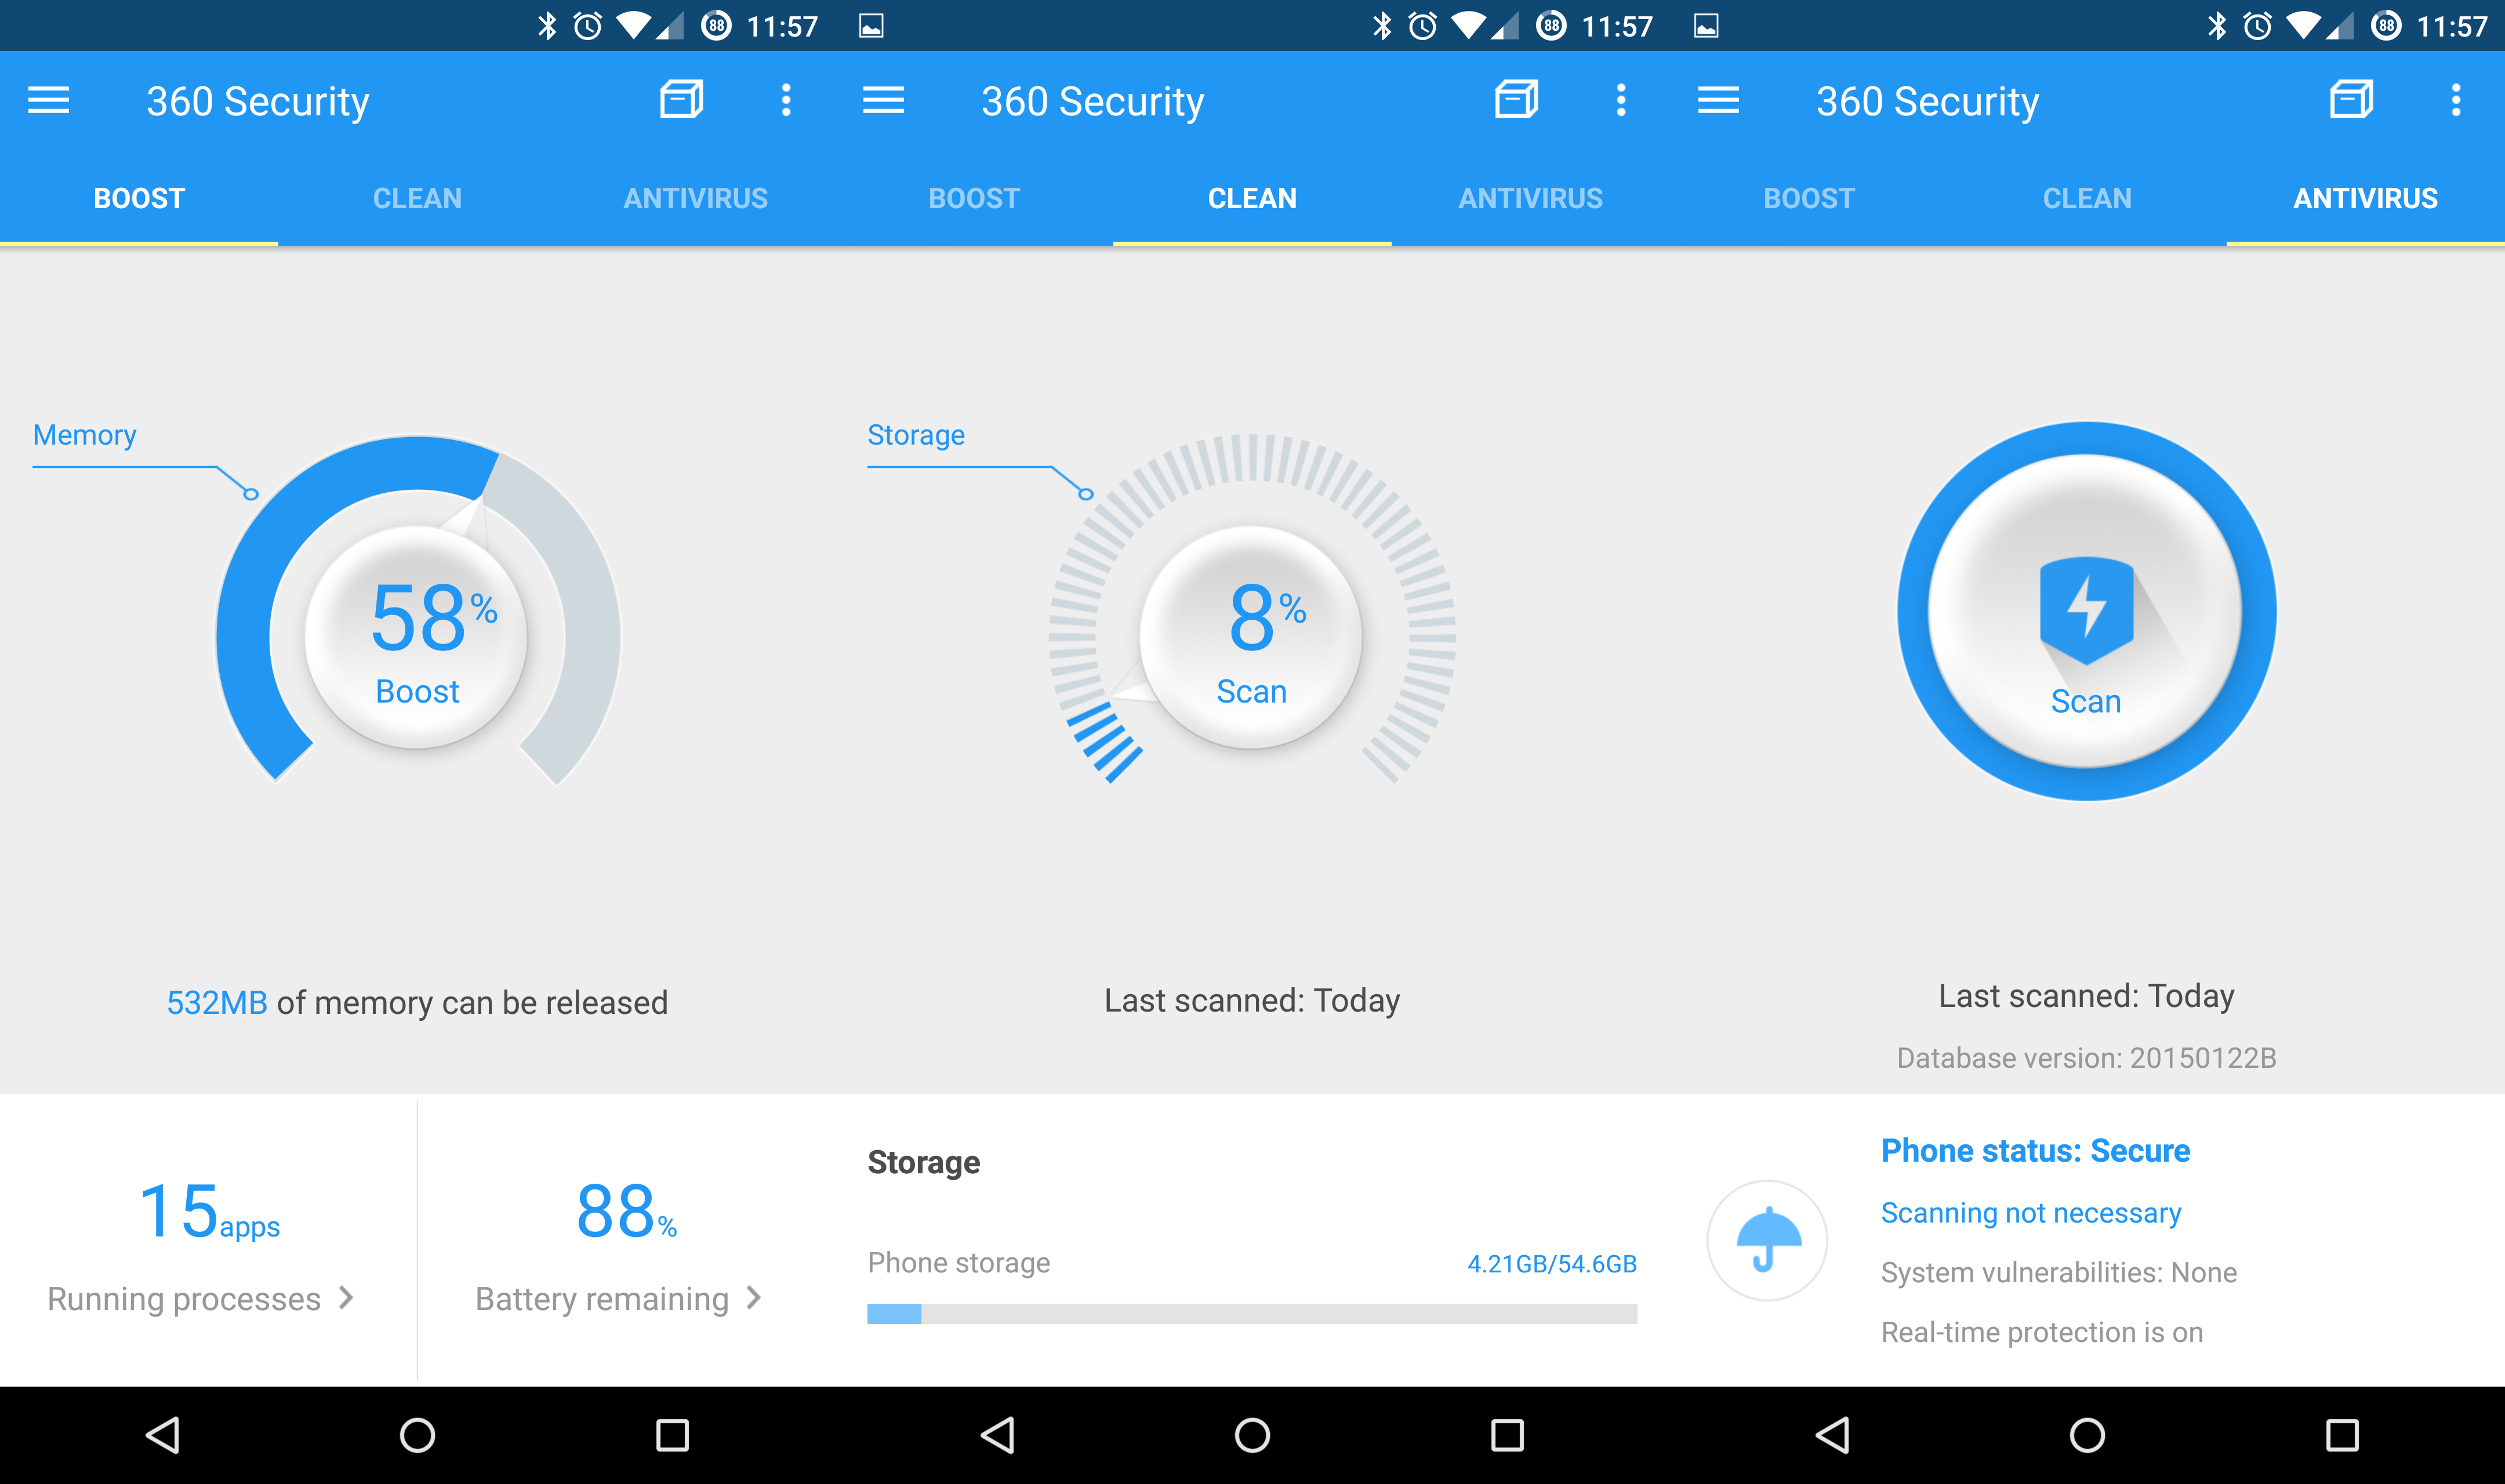 360 Security - Antivirus Boost: Review